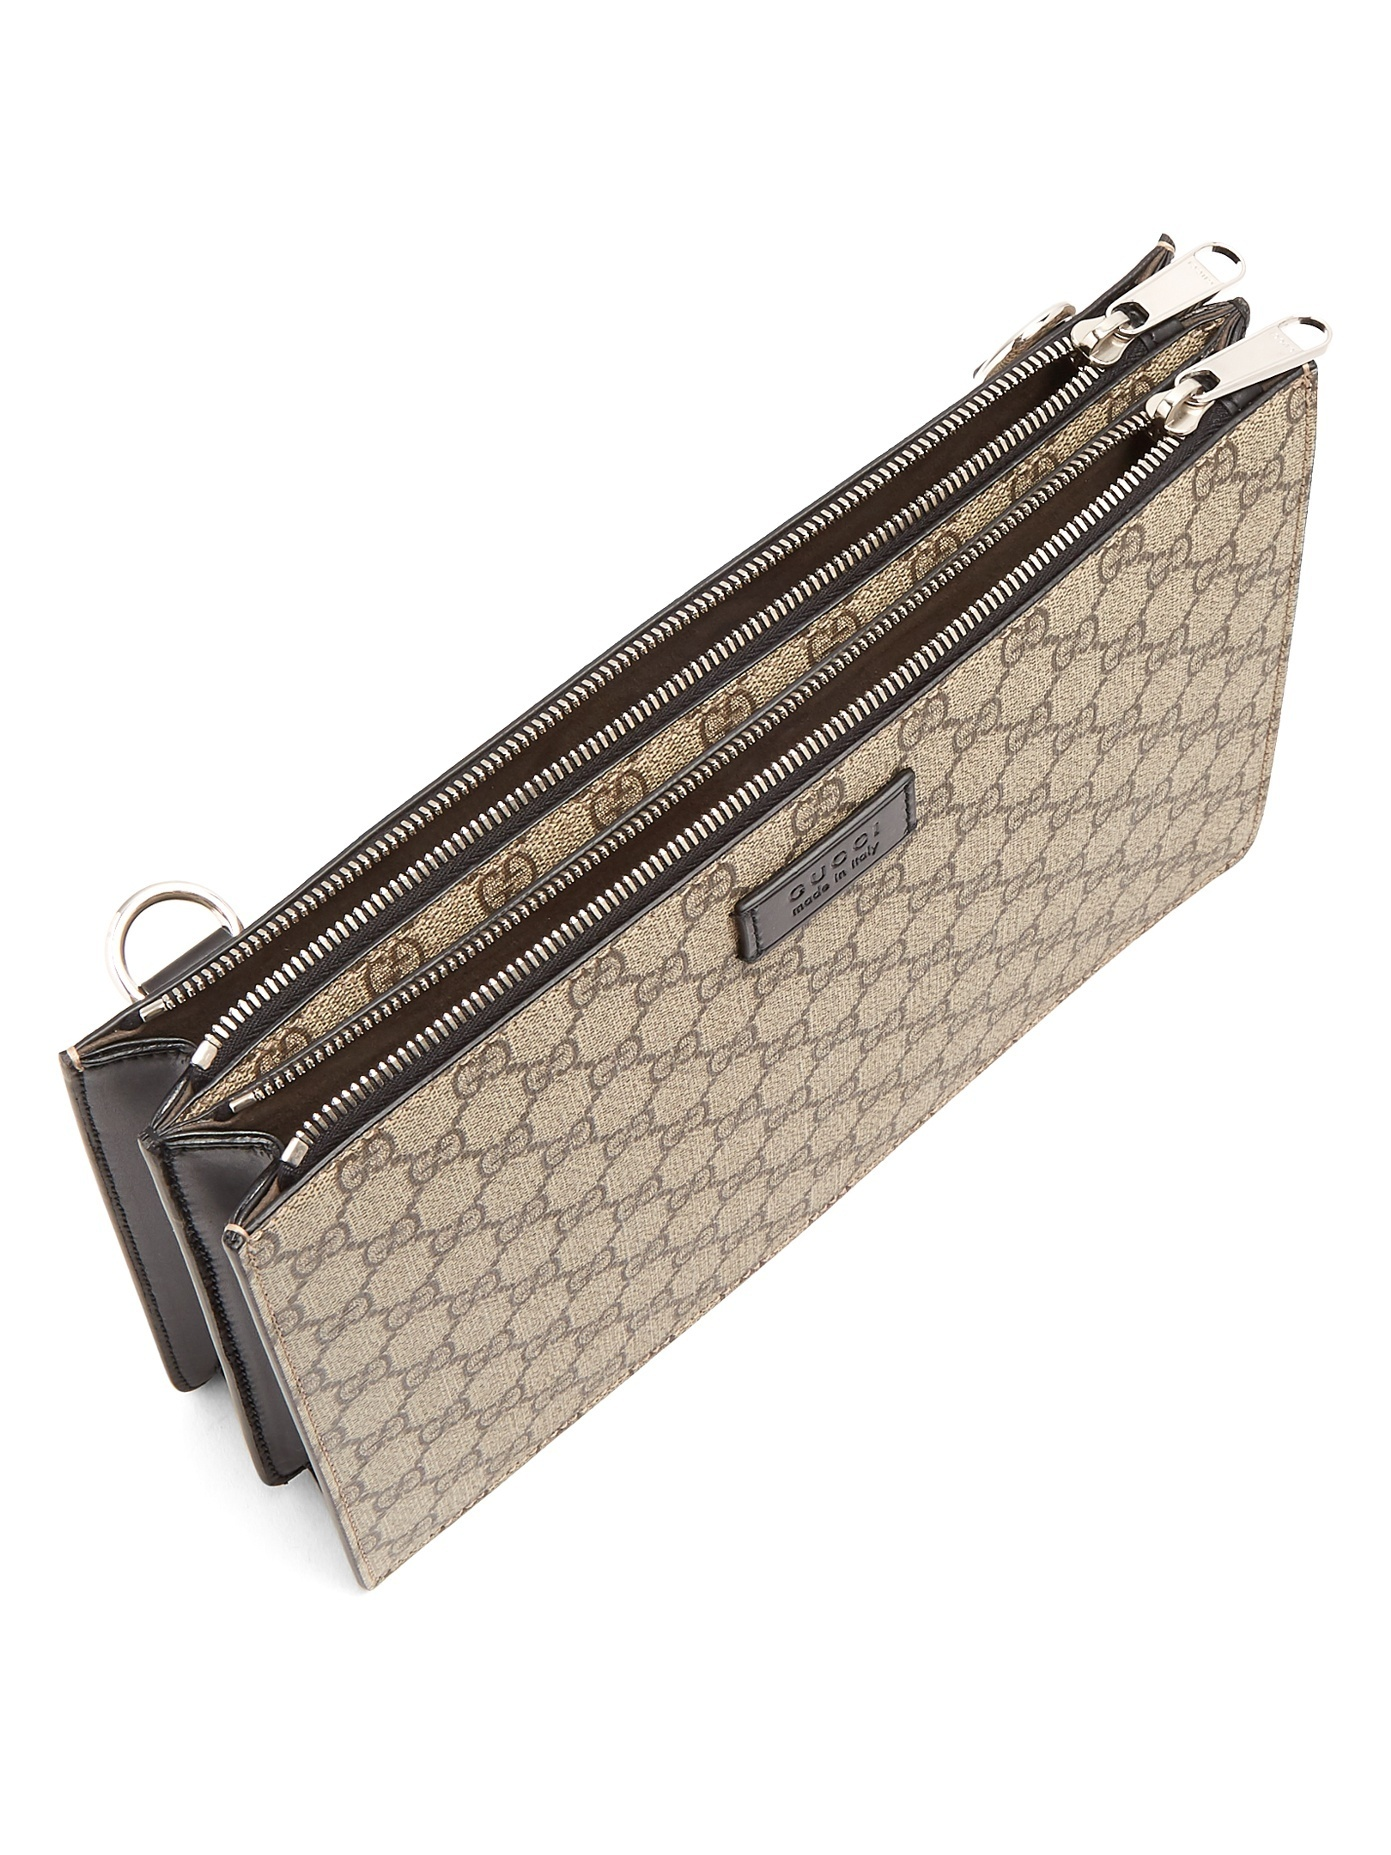 【関税送料込】17FW★GUCCI★GG Supreme cross-body bag